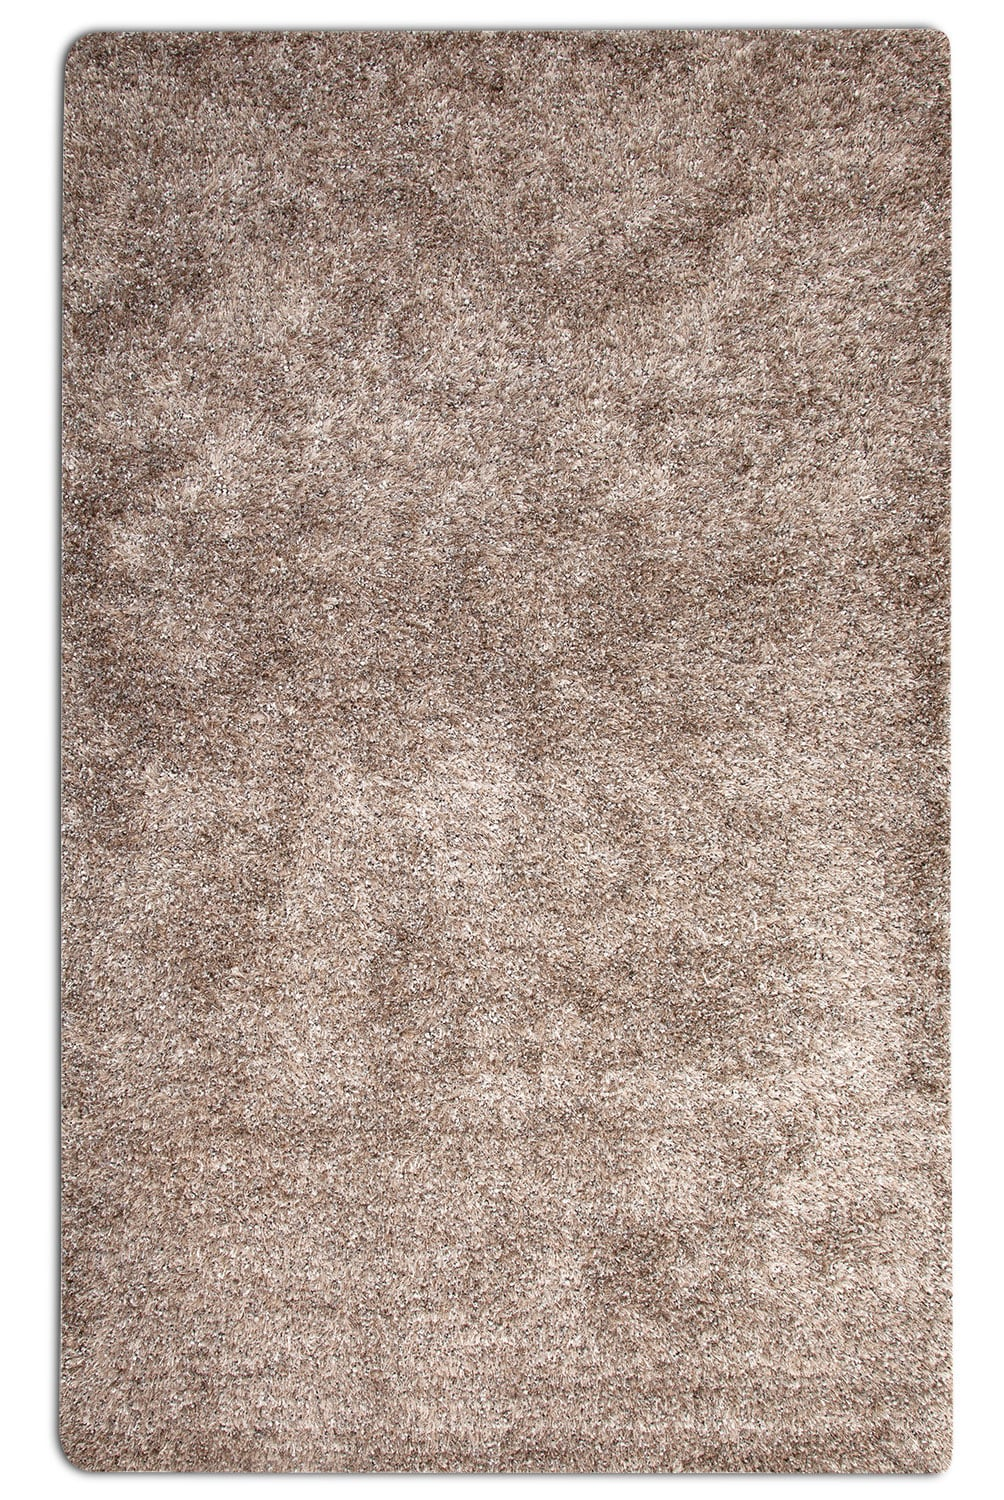 Rugs - Lifestyle Shag Area Rug - Gray